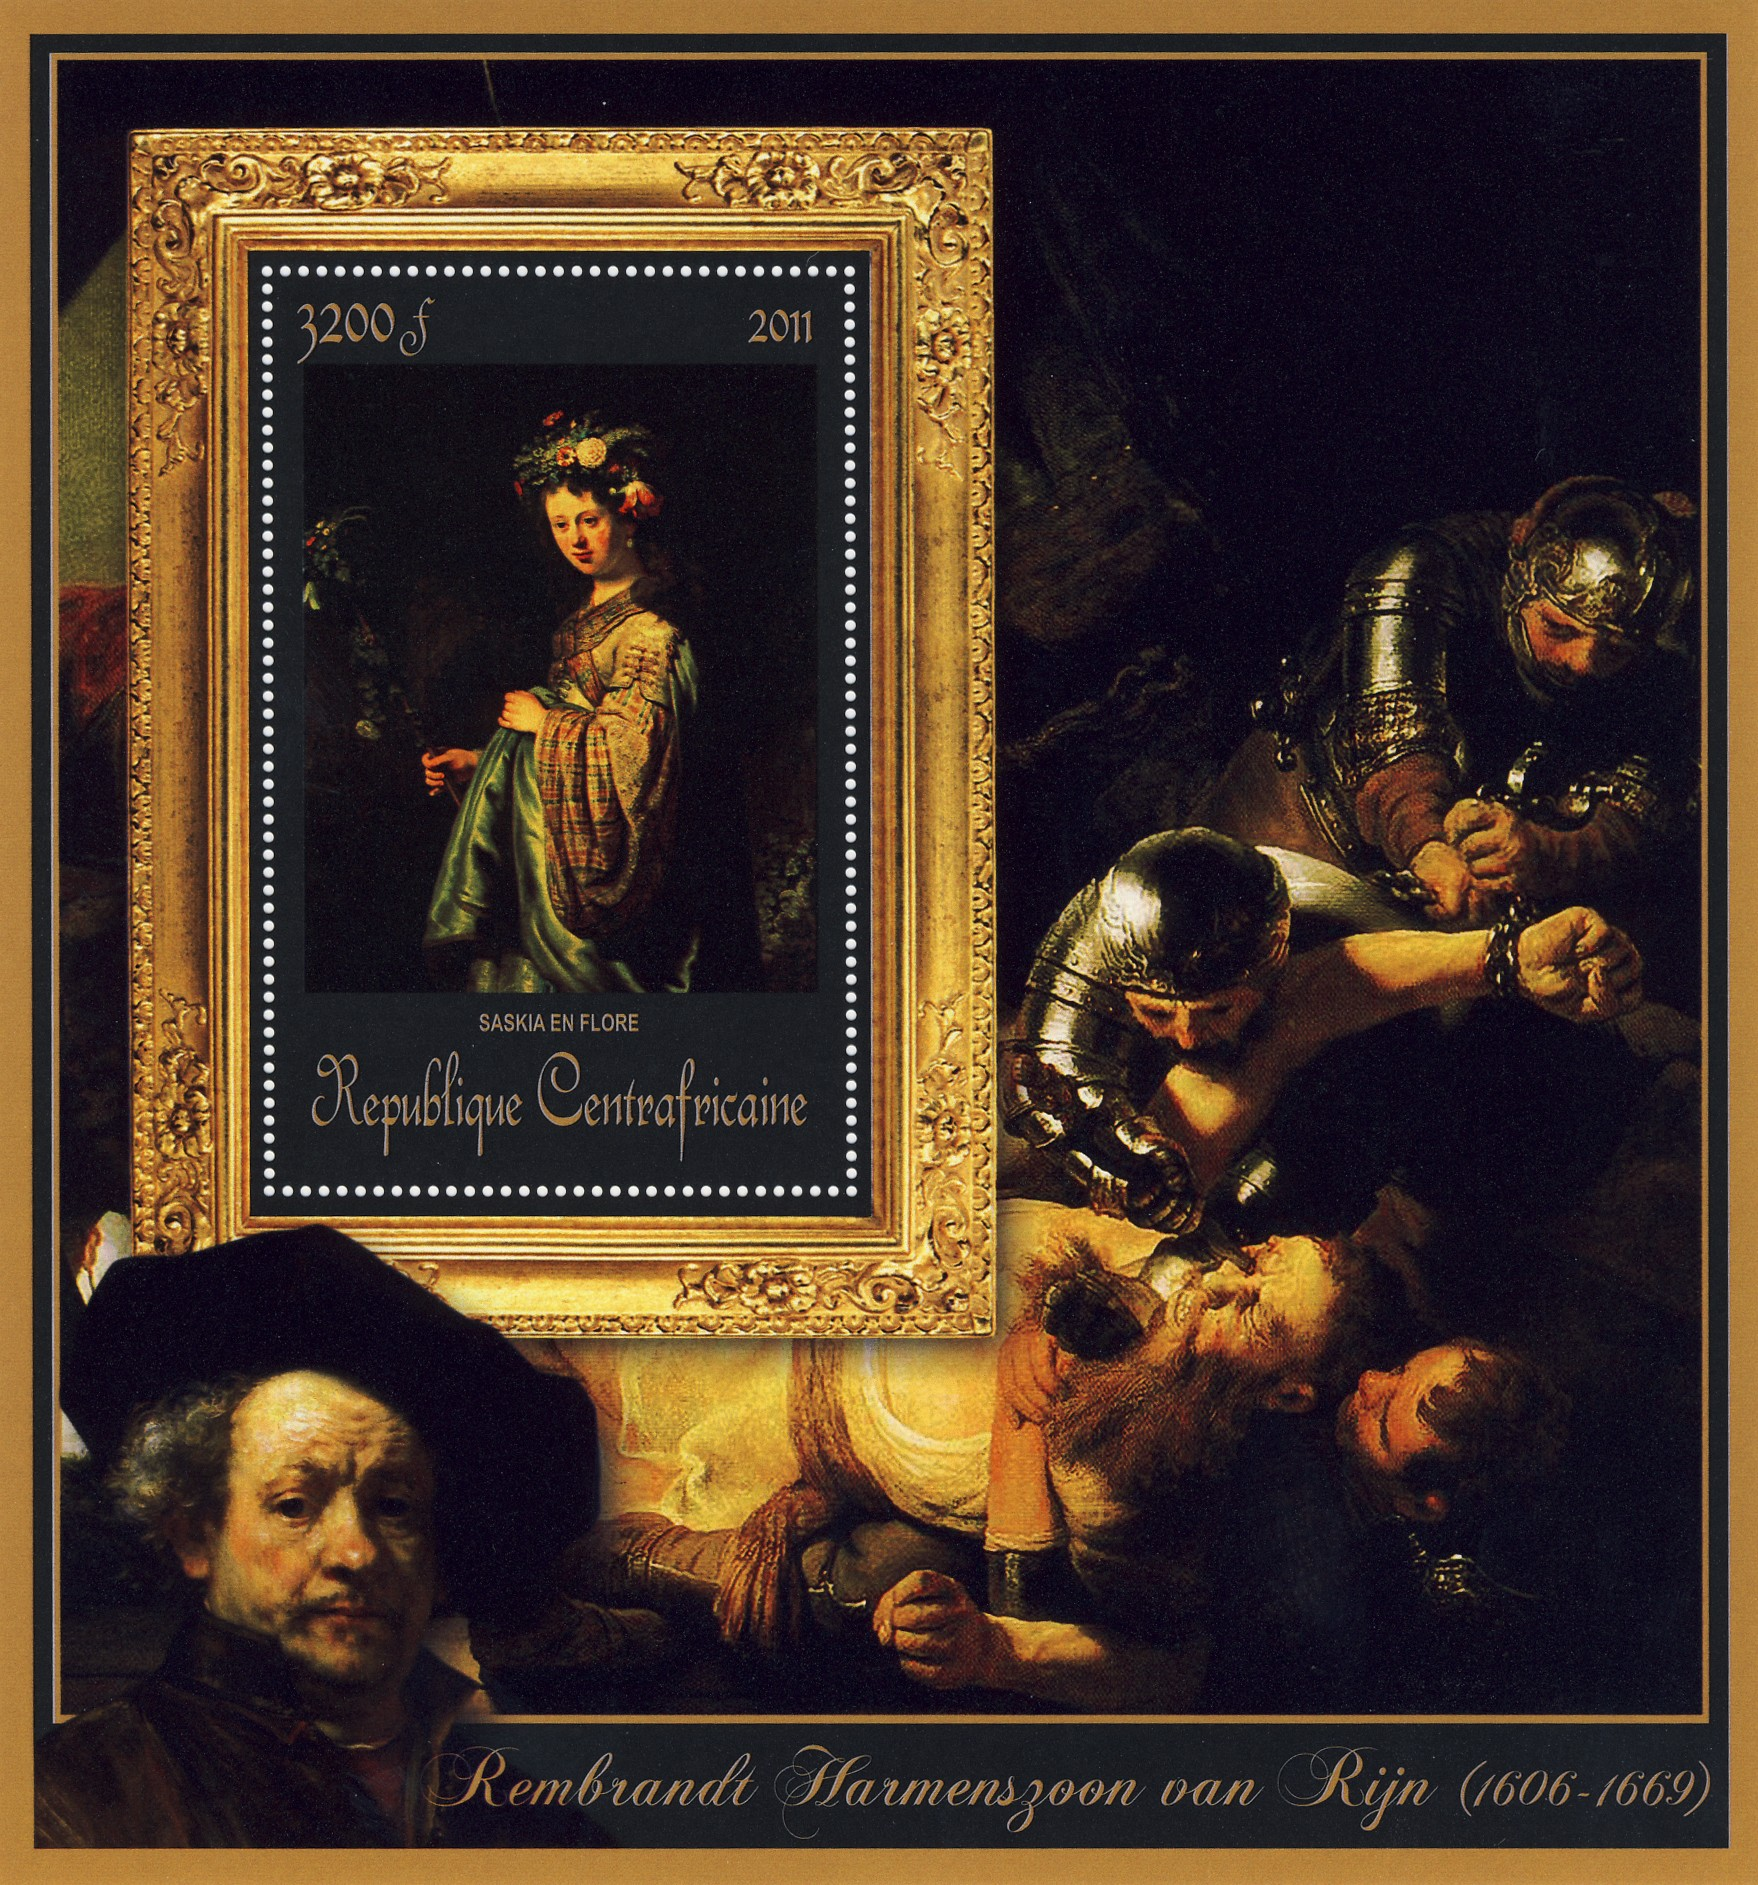 Special Block of Paintings of Rembrandt van Rijn, (Saskia en flore). - Issue of Central African republic postage stamps